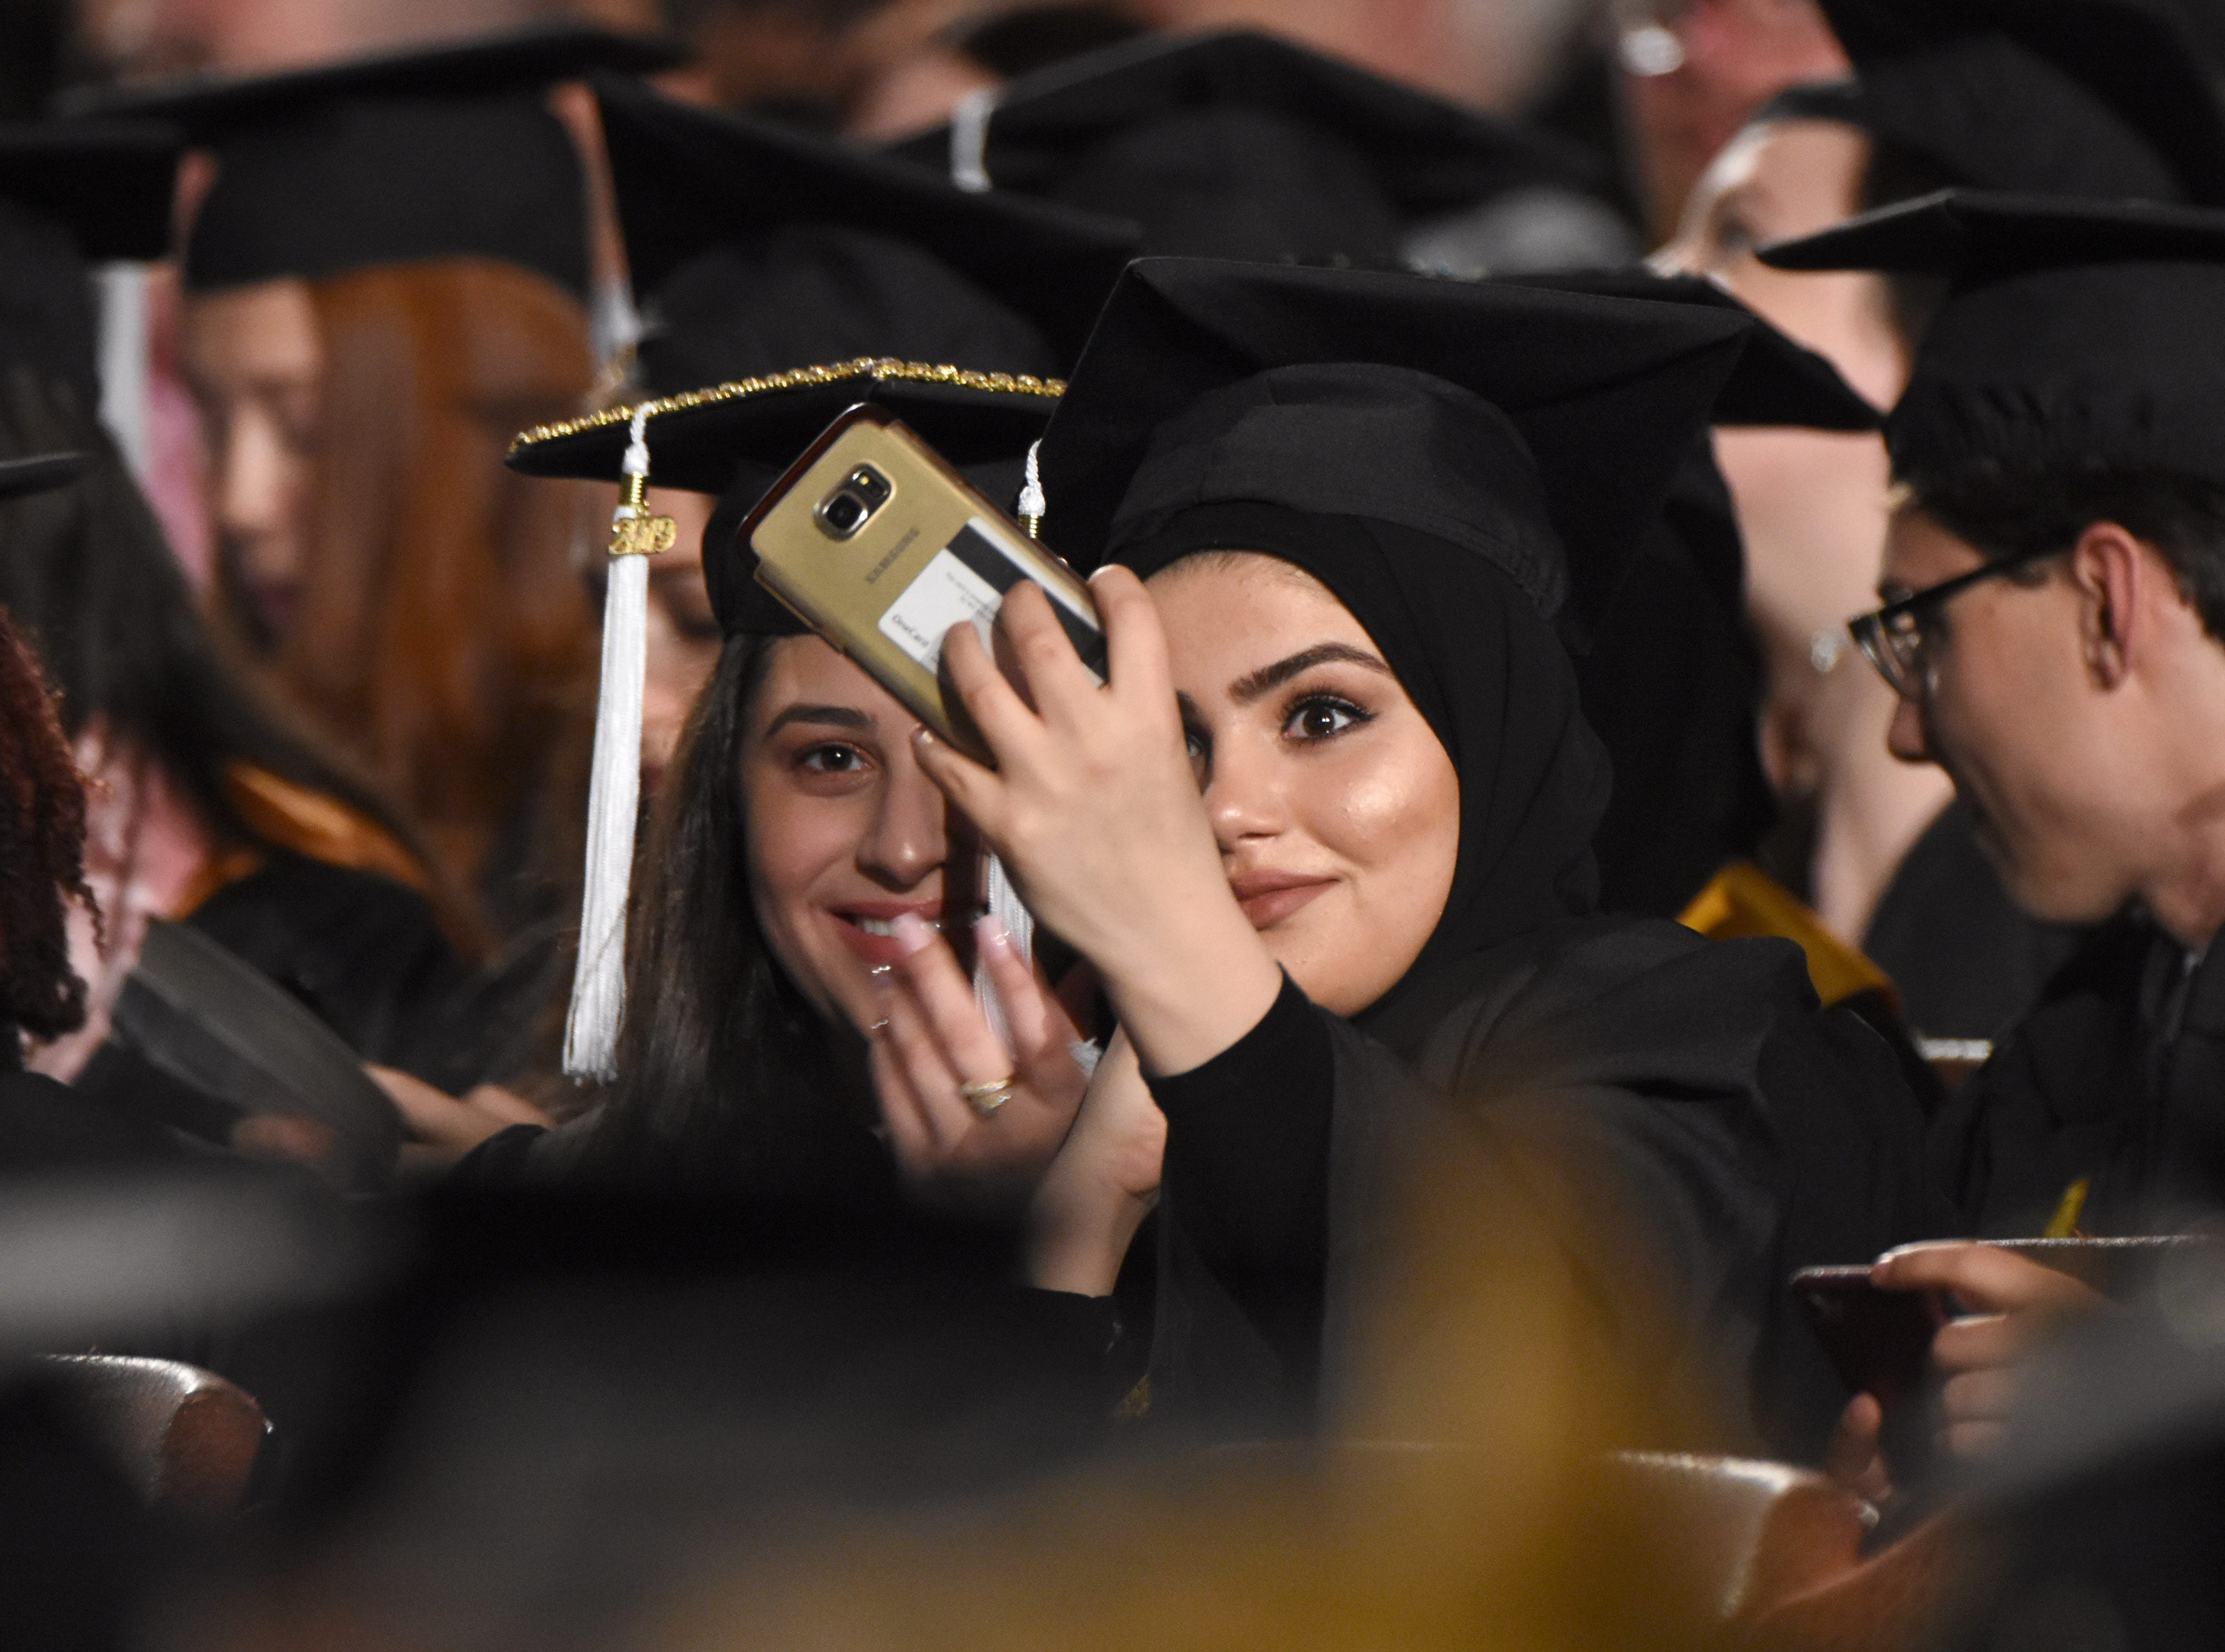 Wayne State University graduates take photographs during commencement exercises at the Fox Theater on Friday, May 3, 2019.